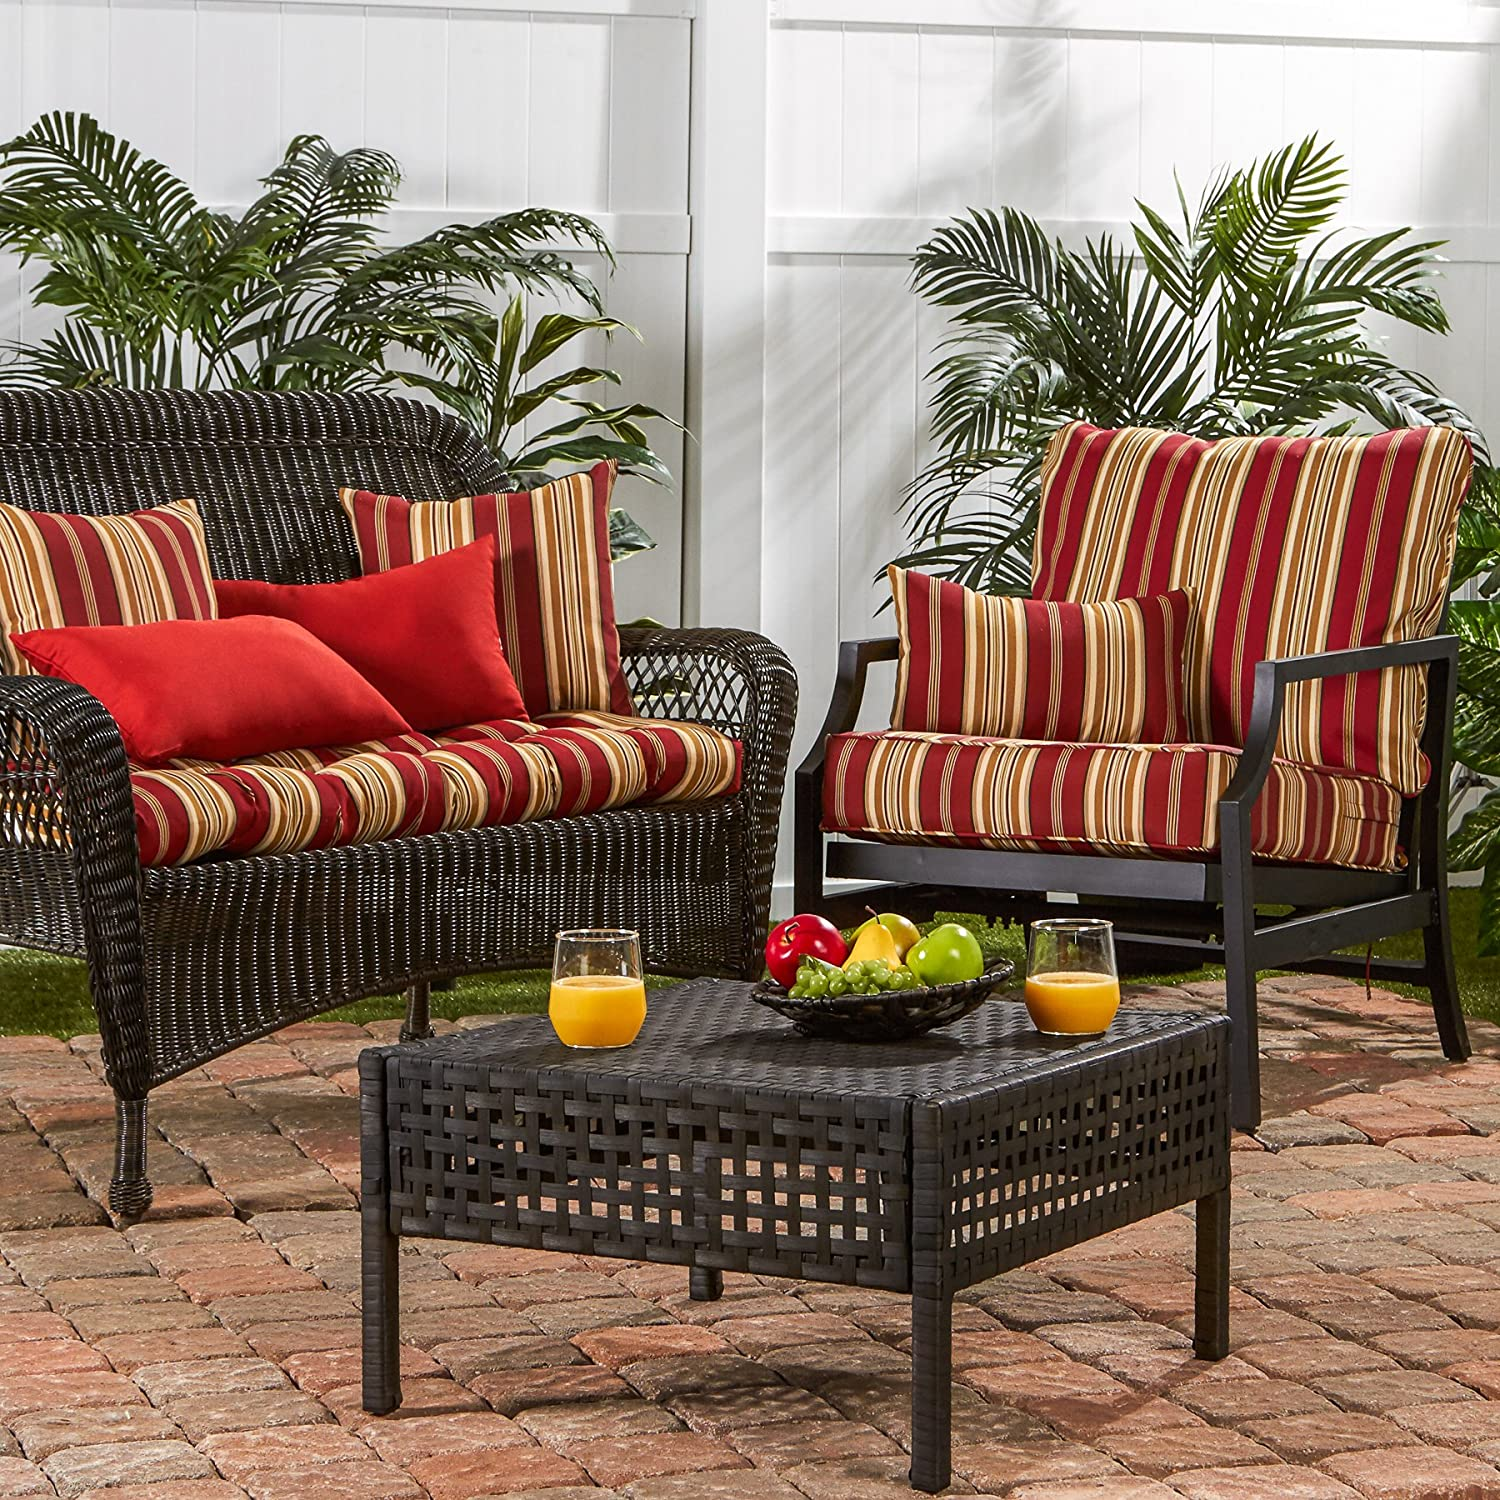 Amazon.com : Greendale Home Fashions Deep Seat Cushion Set, Roma Stripe :  Garden U0026 Outdoor